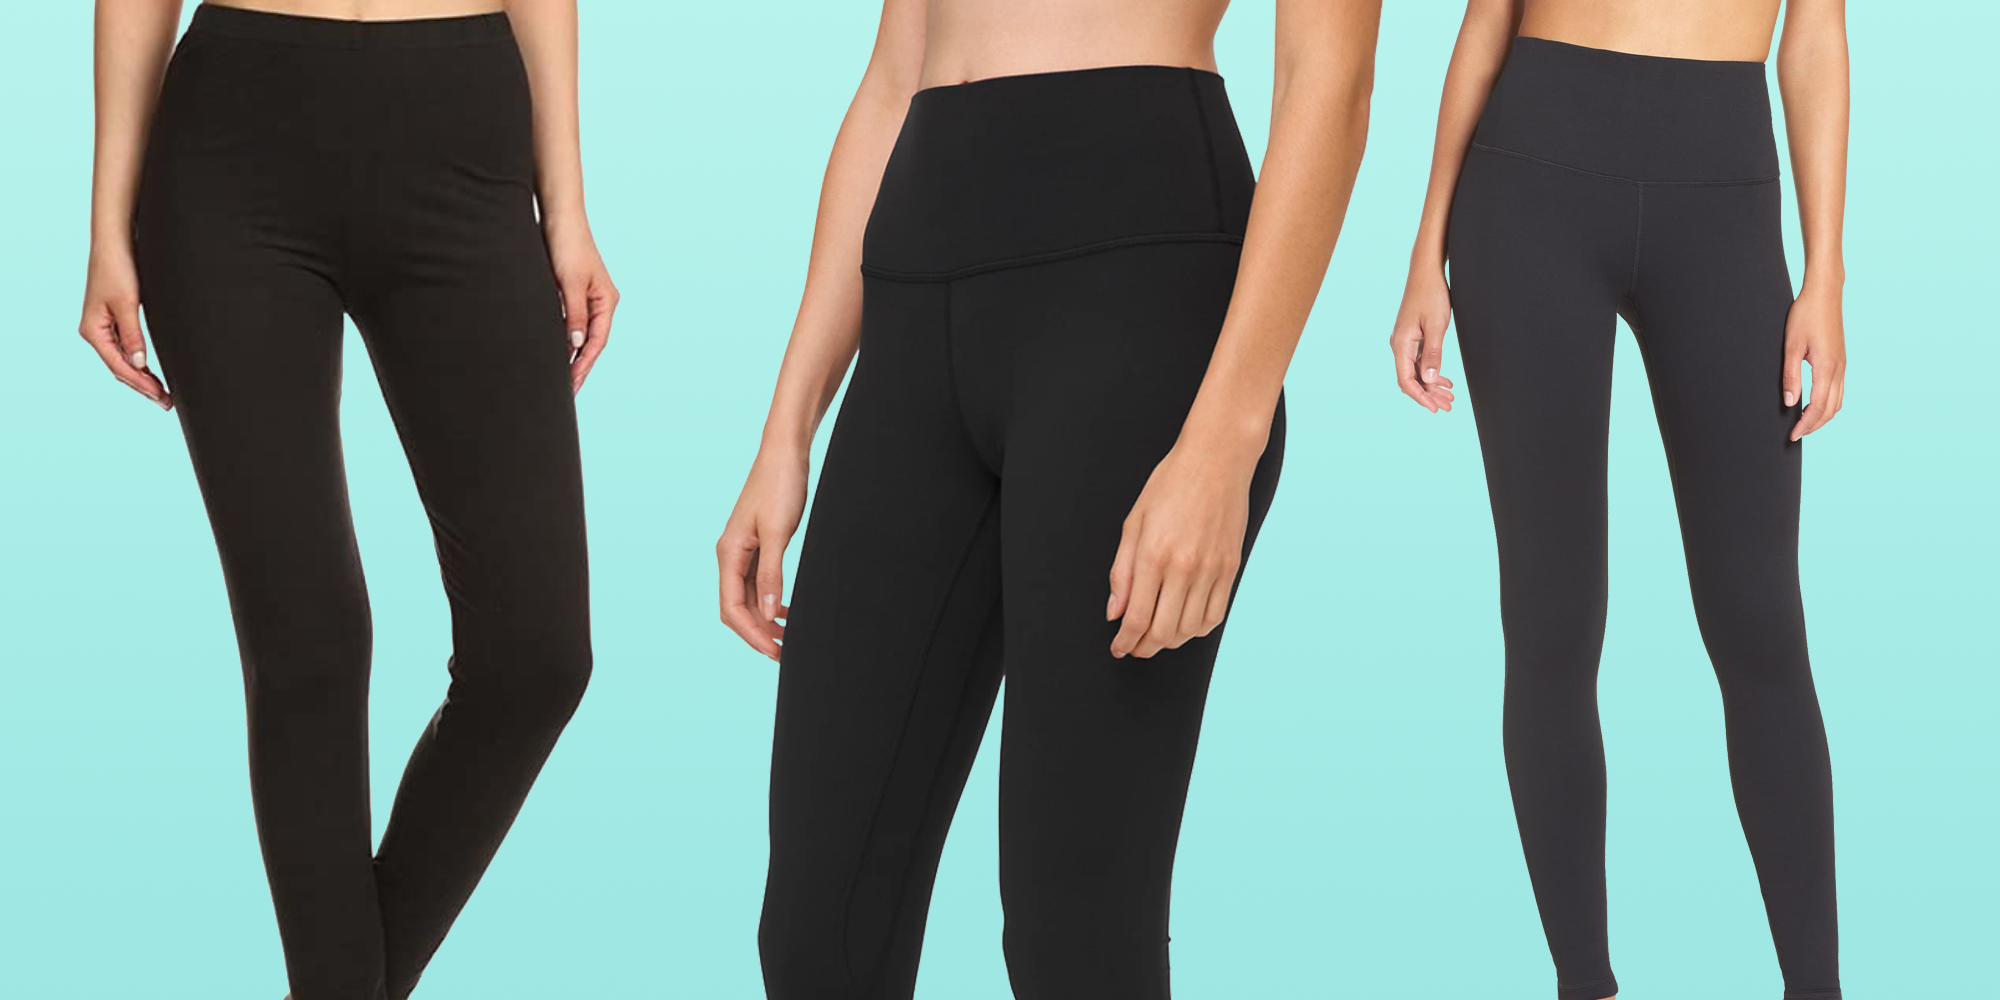 Why Leggings Are a Suitable Clothes Option For All Women